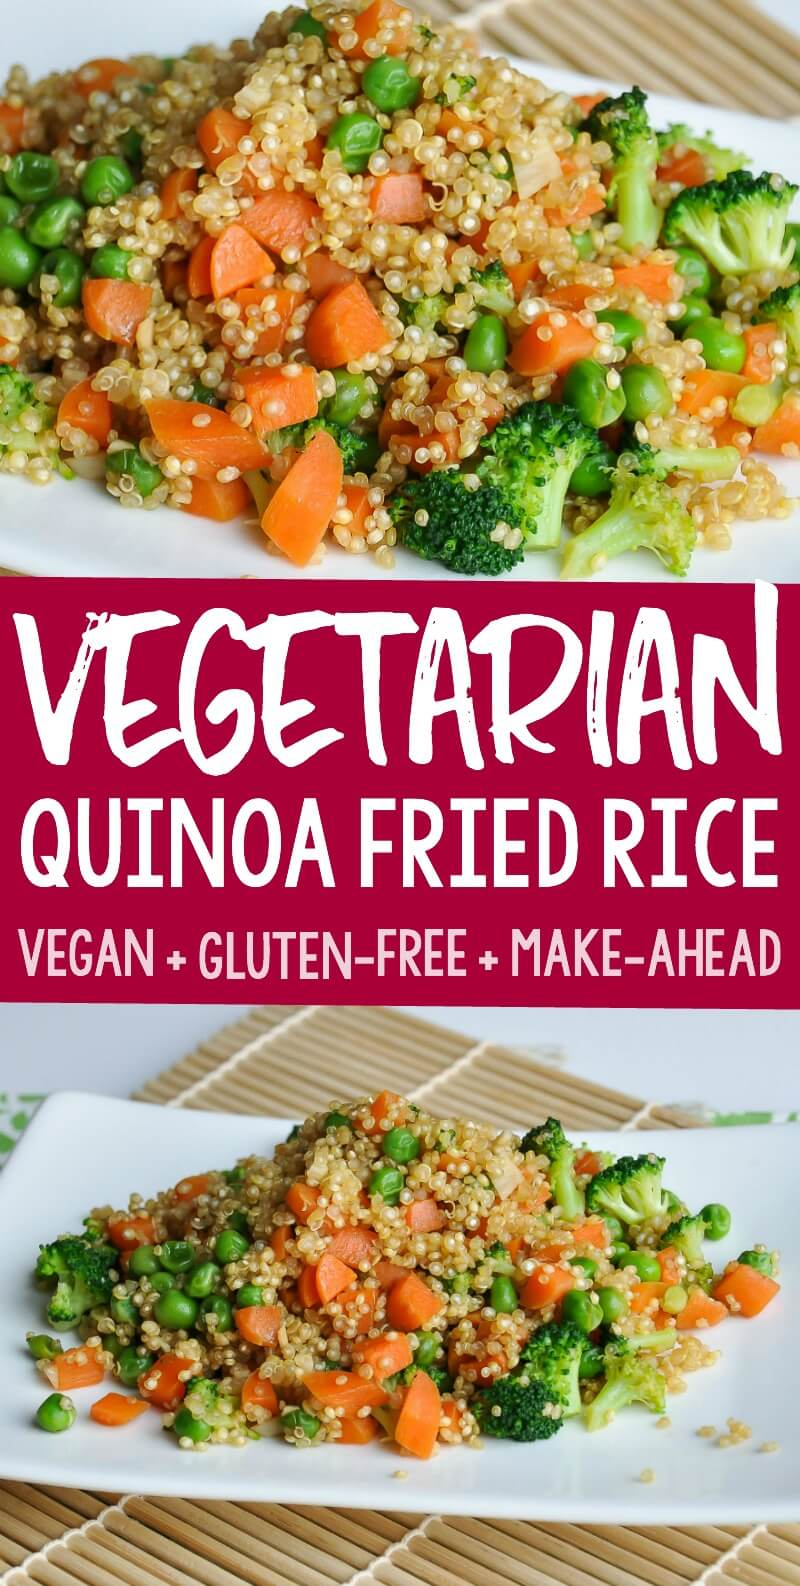 This flavorful vegetarian quinoa fried rice with broccoli, peas, and carrots, is healthy and delicious! Your family will love this tasty gluten-free dish!